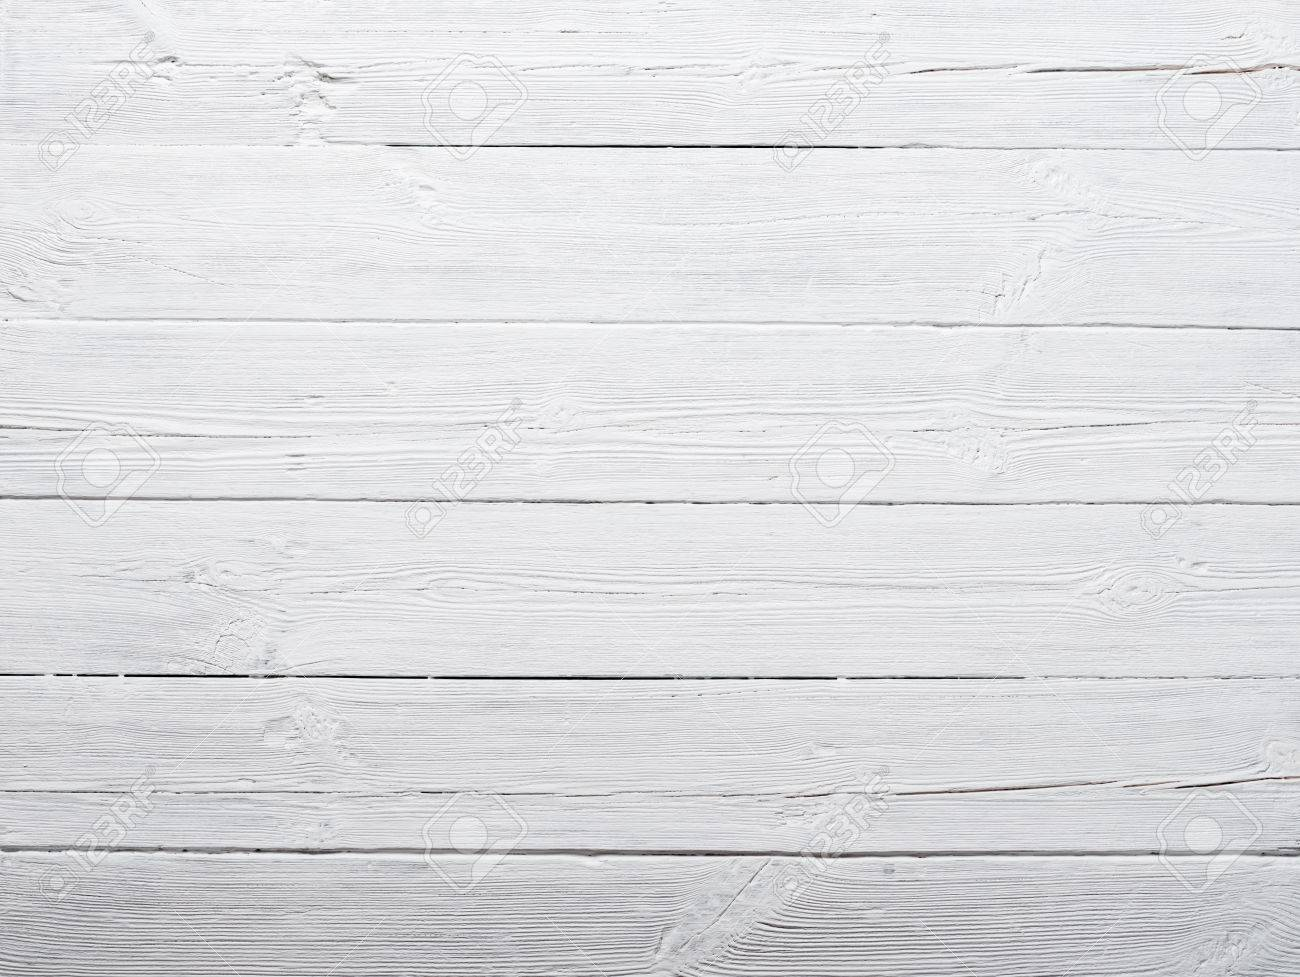 Attirant Stock Photo   White Painted Wood Texture Background